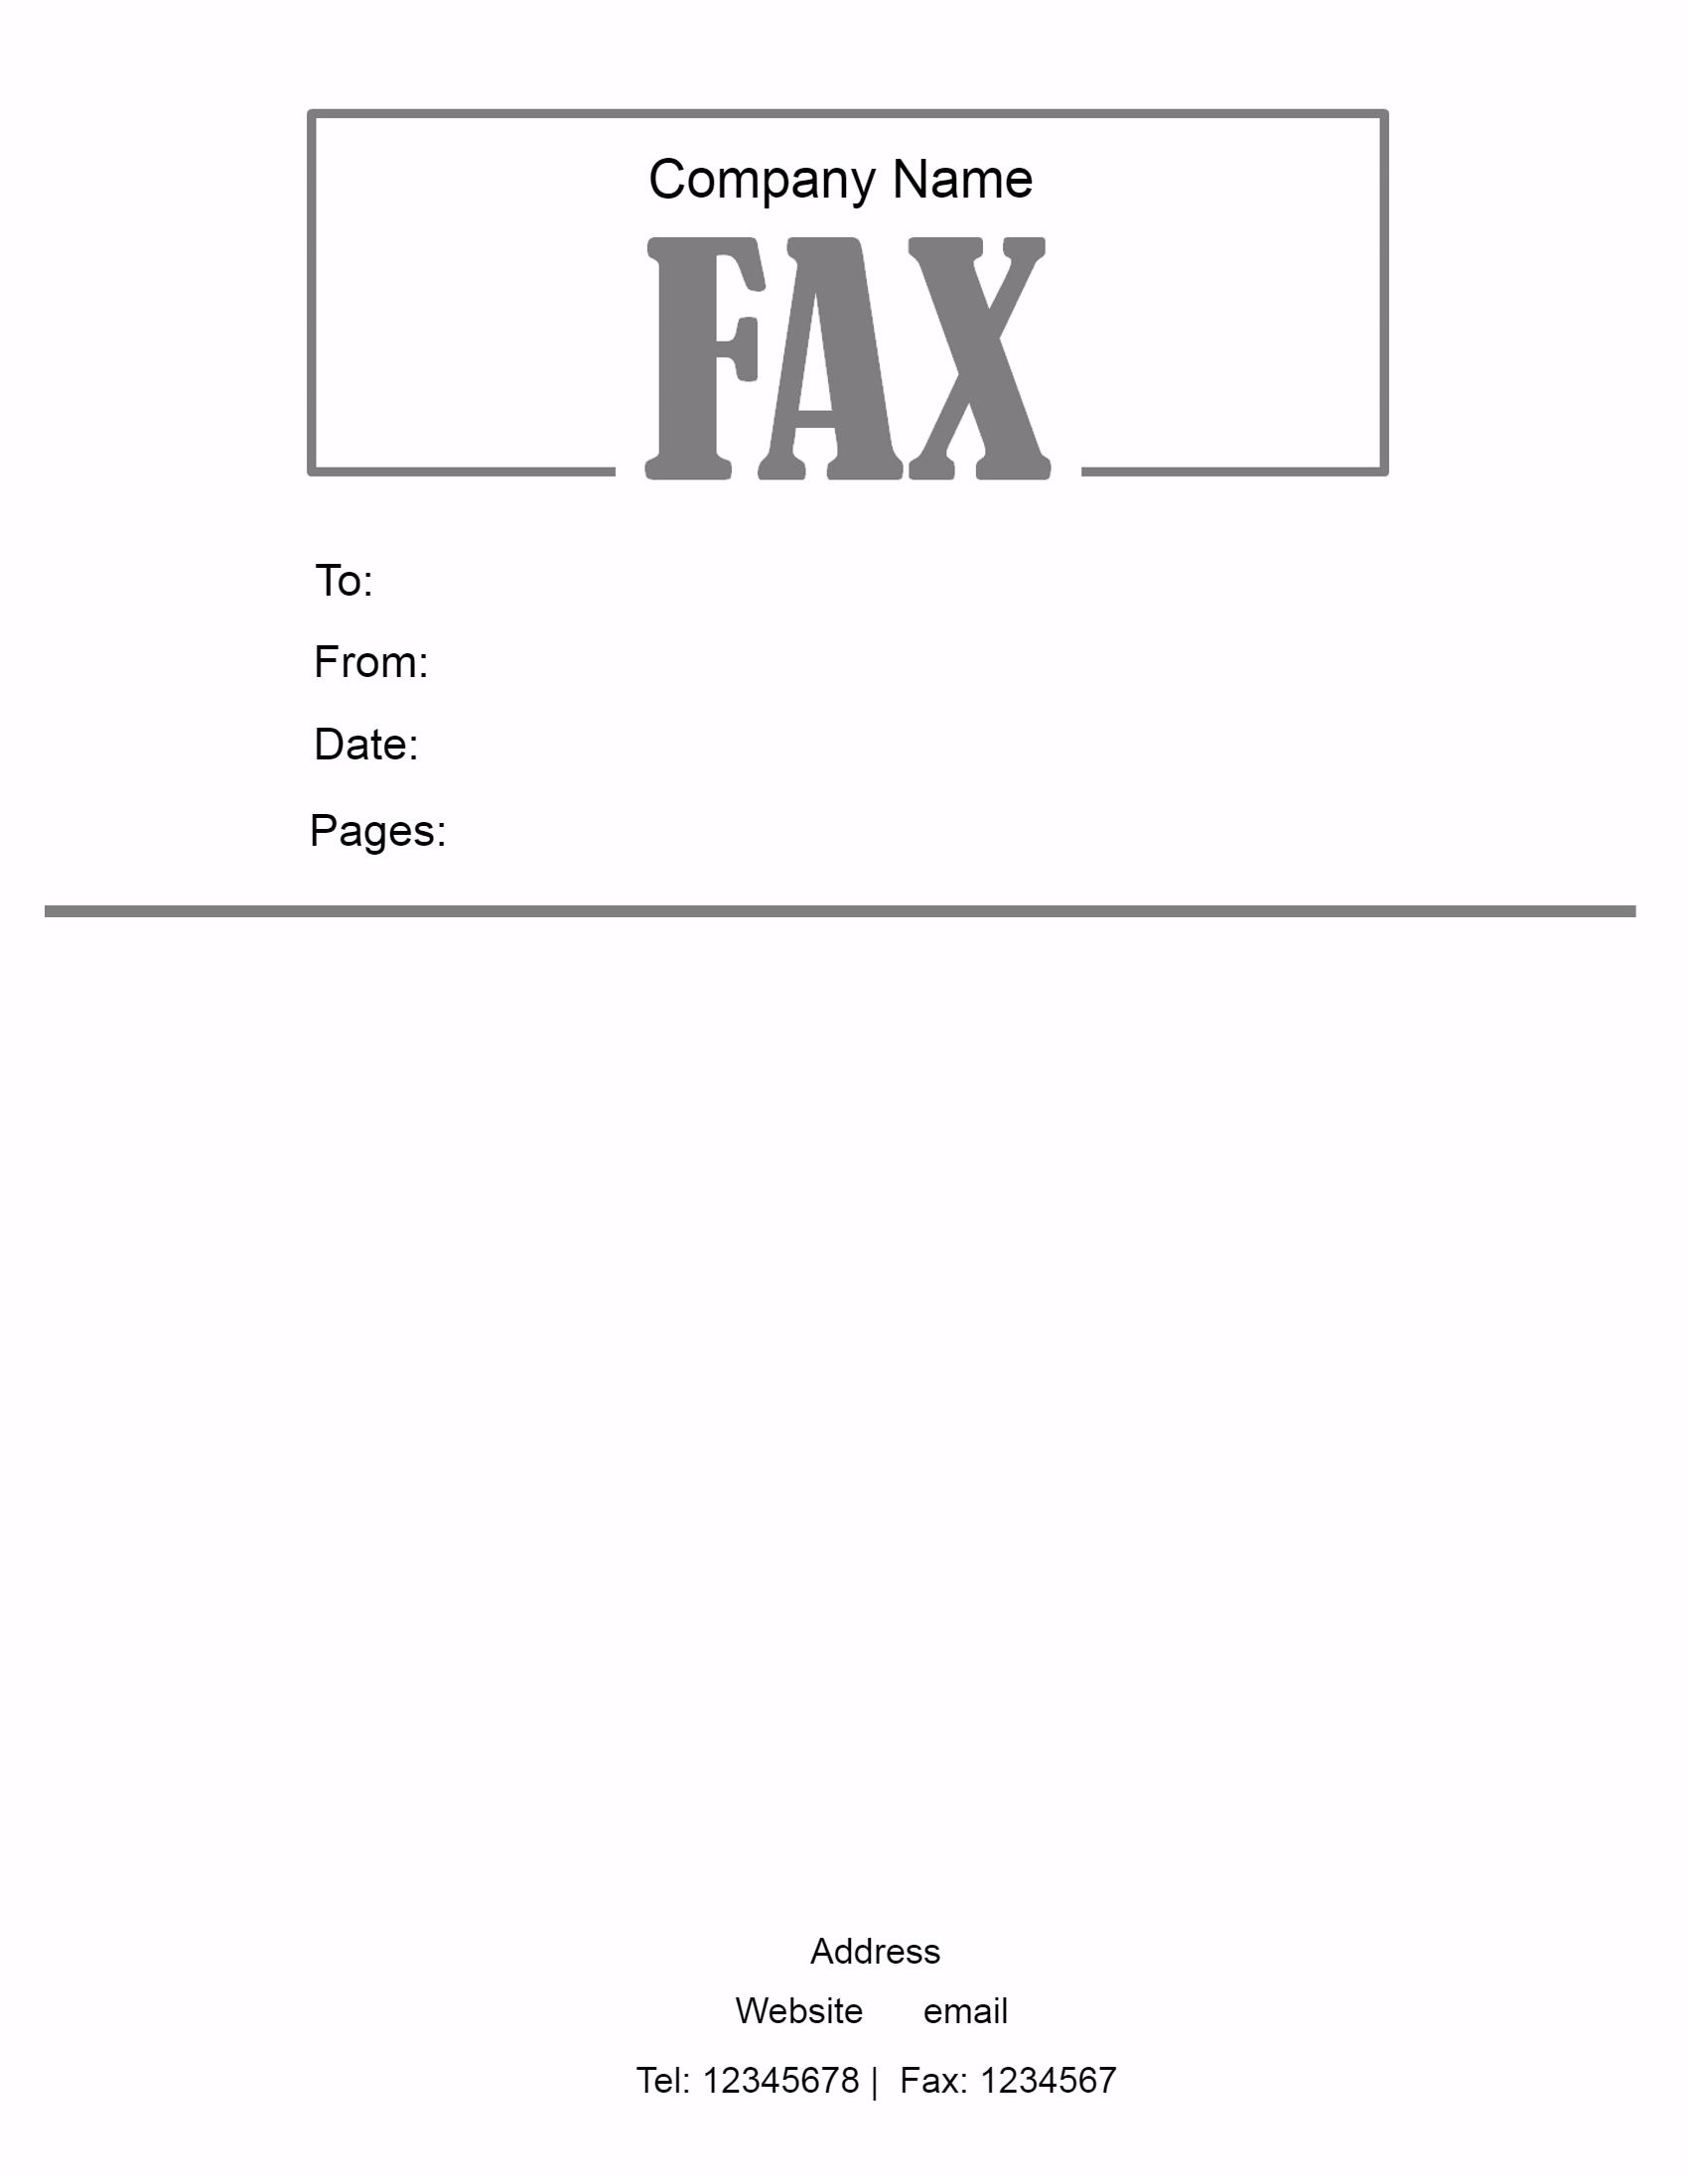 Fax Cover Sheet PDF Printable